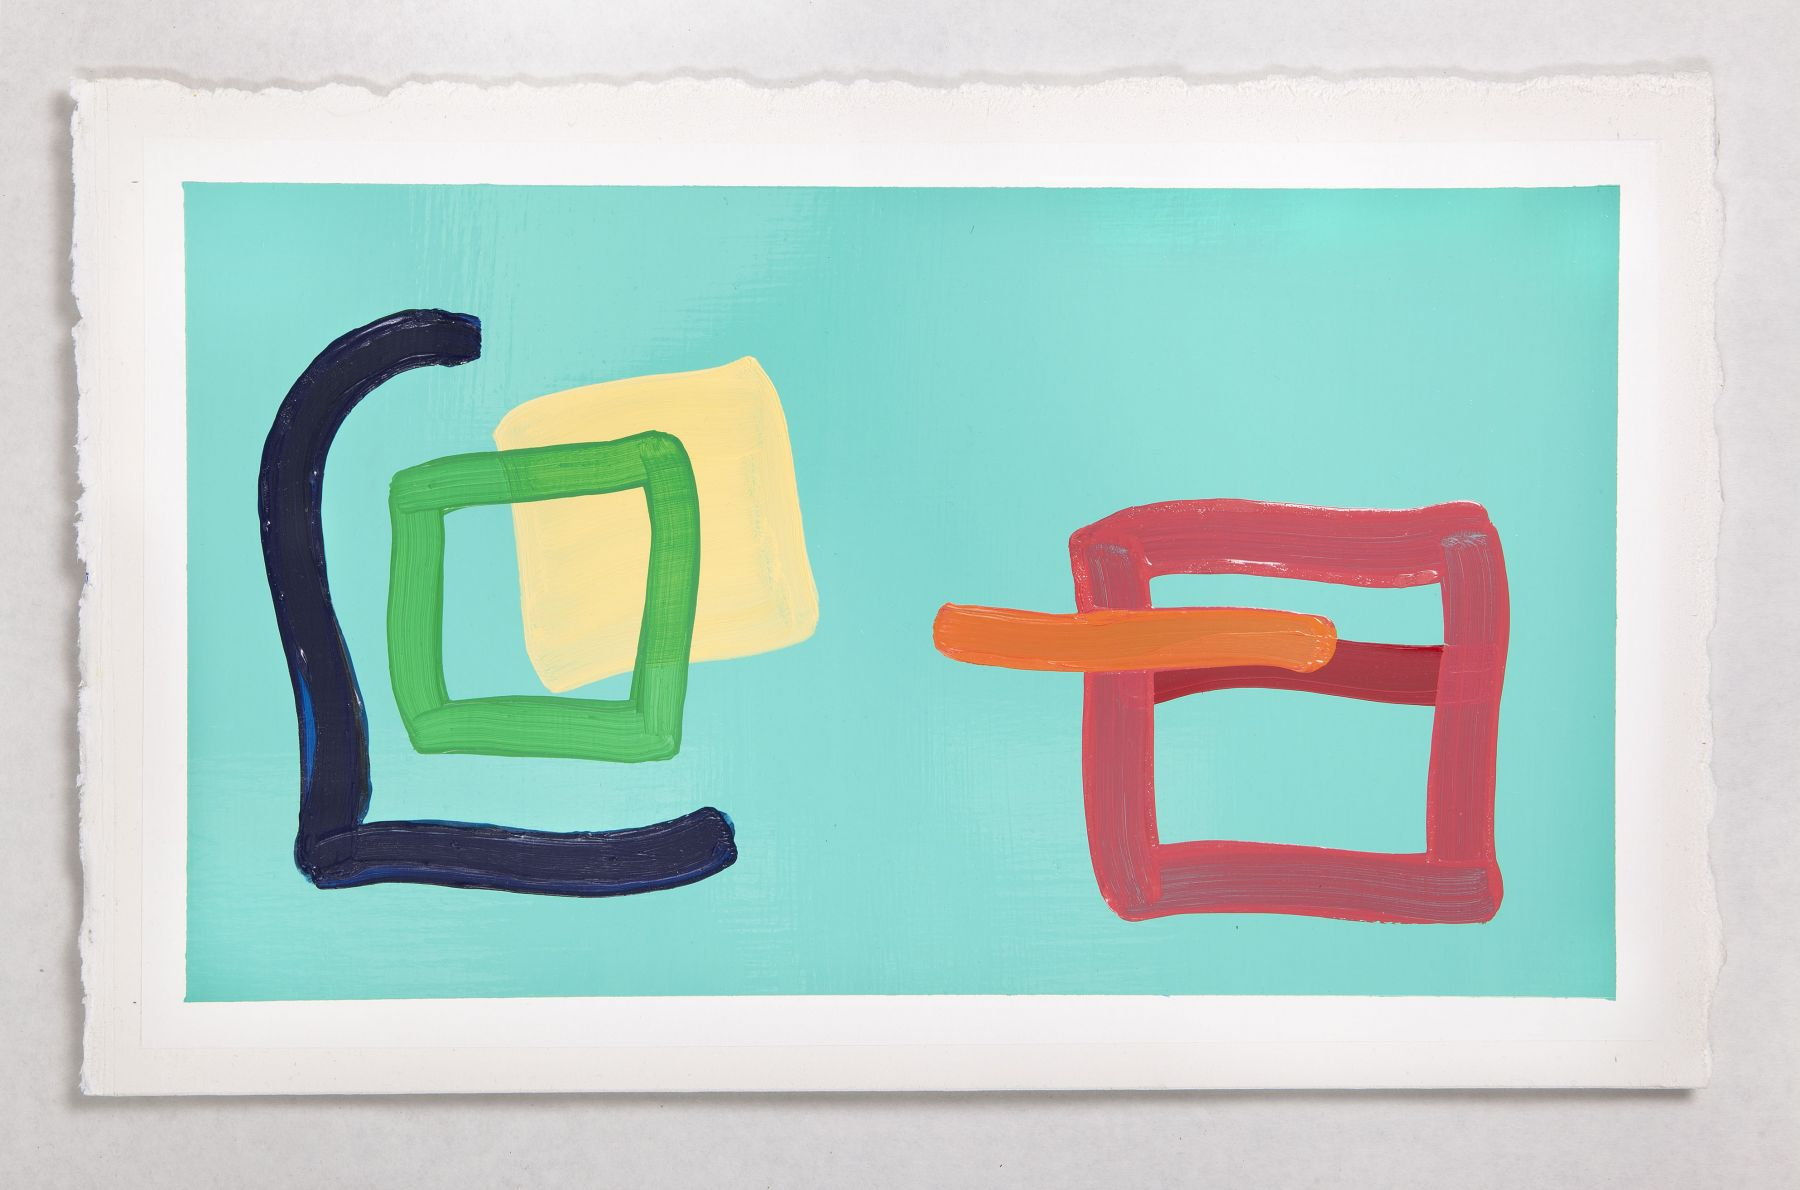 Sharon Louden, Community, 2013, Oil and enamel on paper, 11h x 18w in, Works on paper